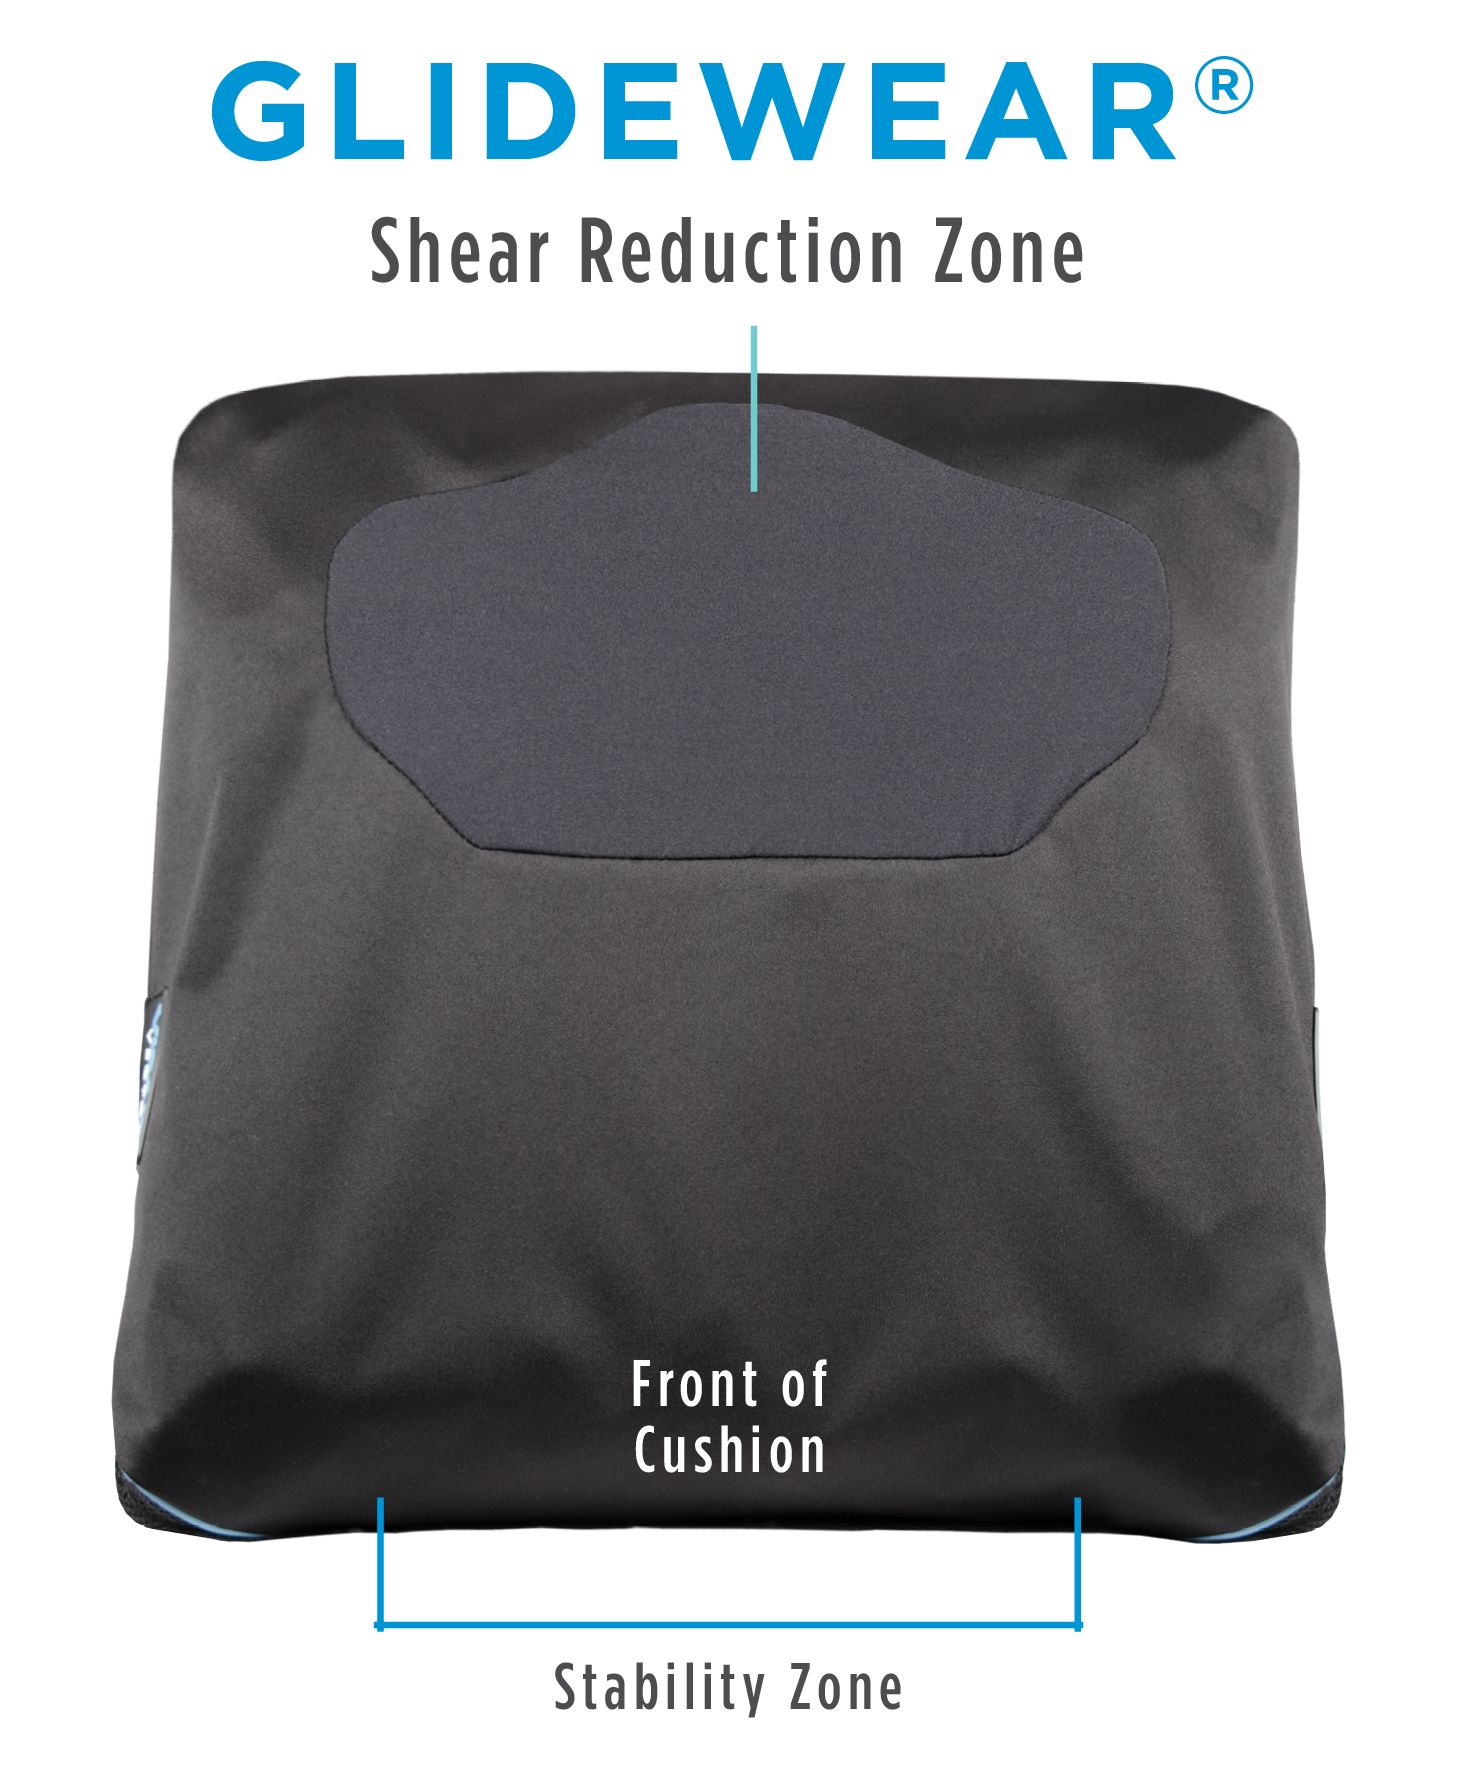 Permobil GLIDE WEAR of Shear Reduction Zone and Stability zone Front of Cushion